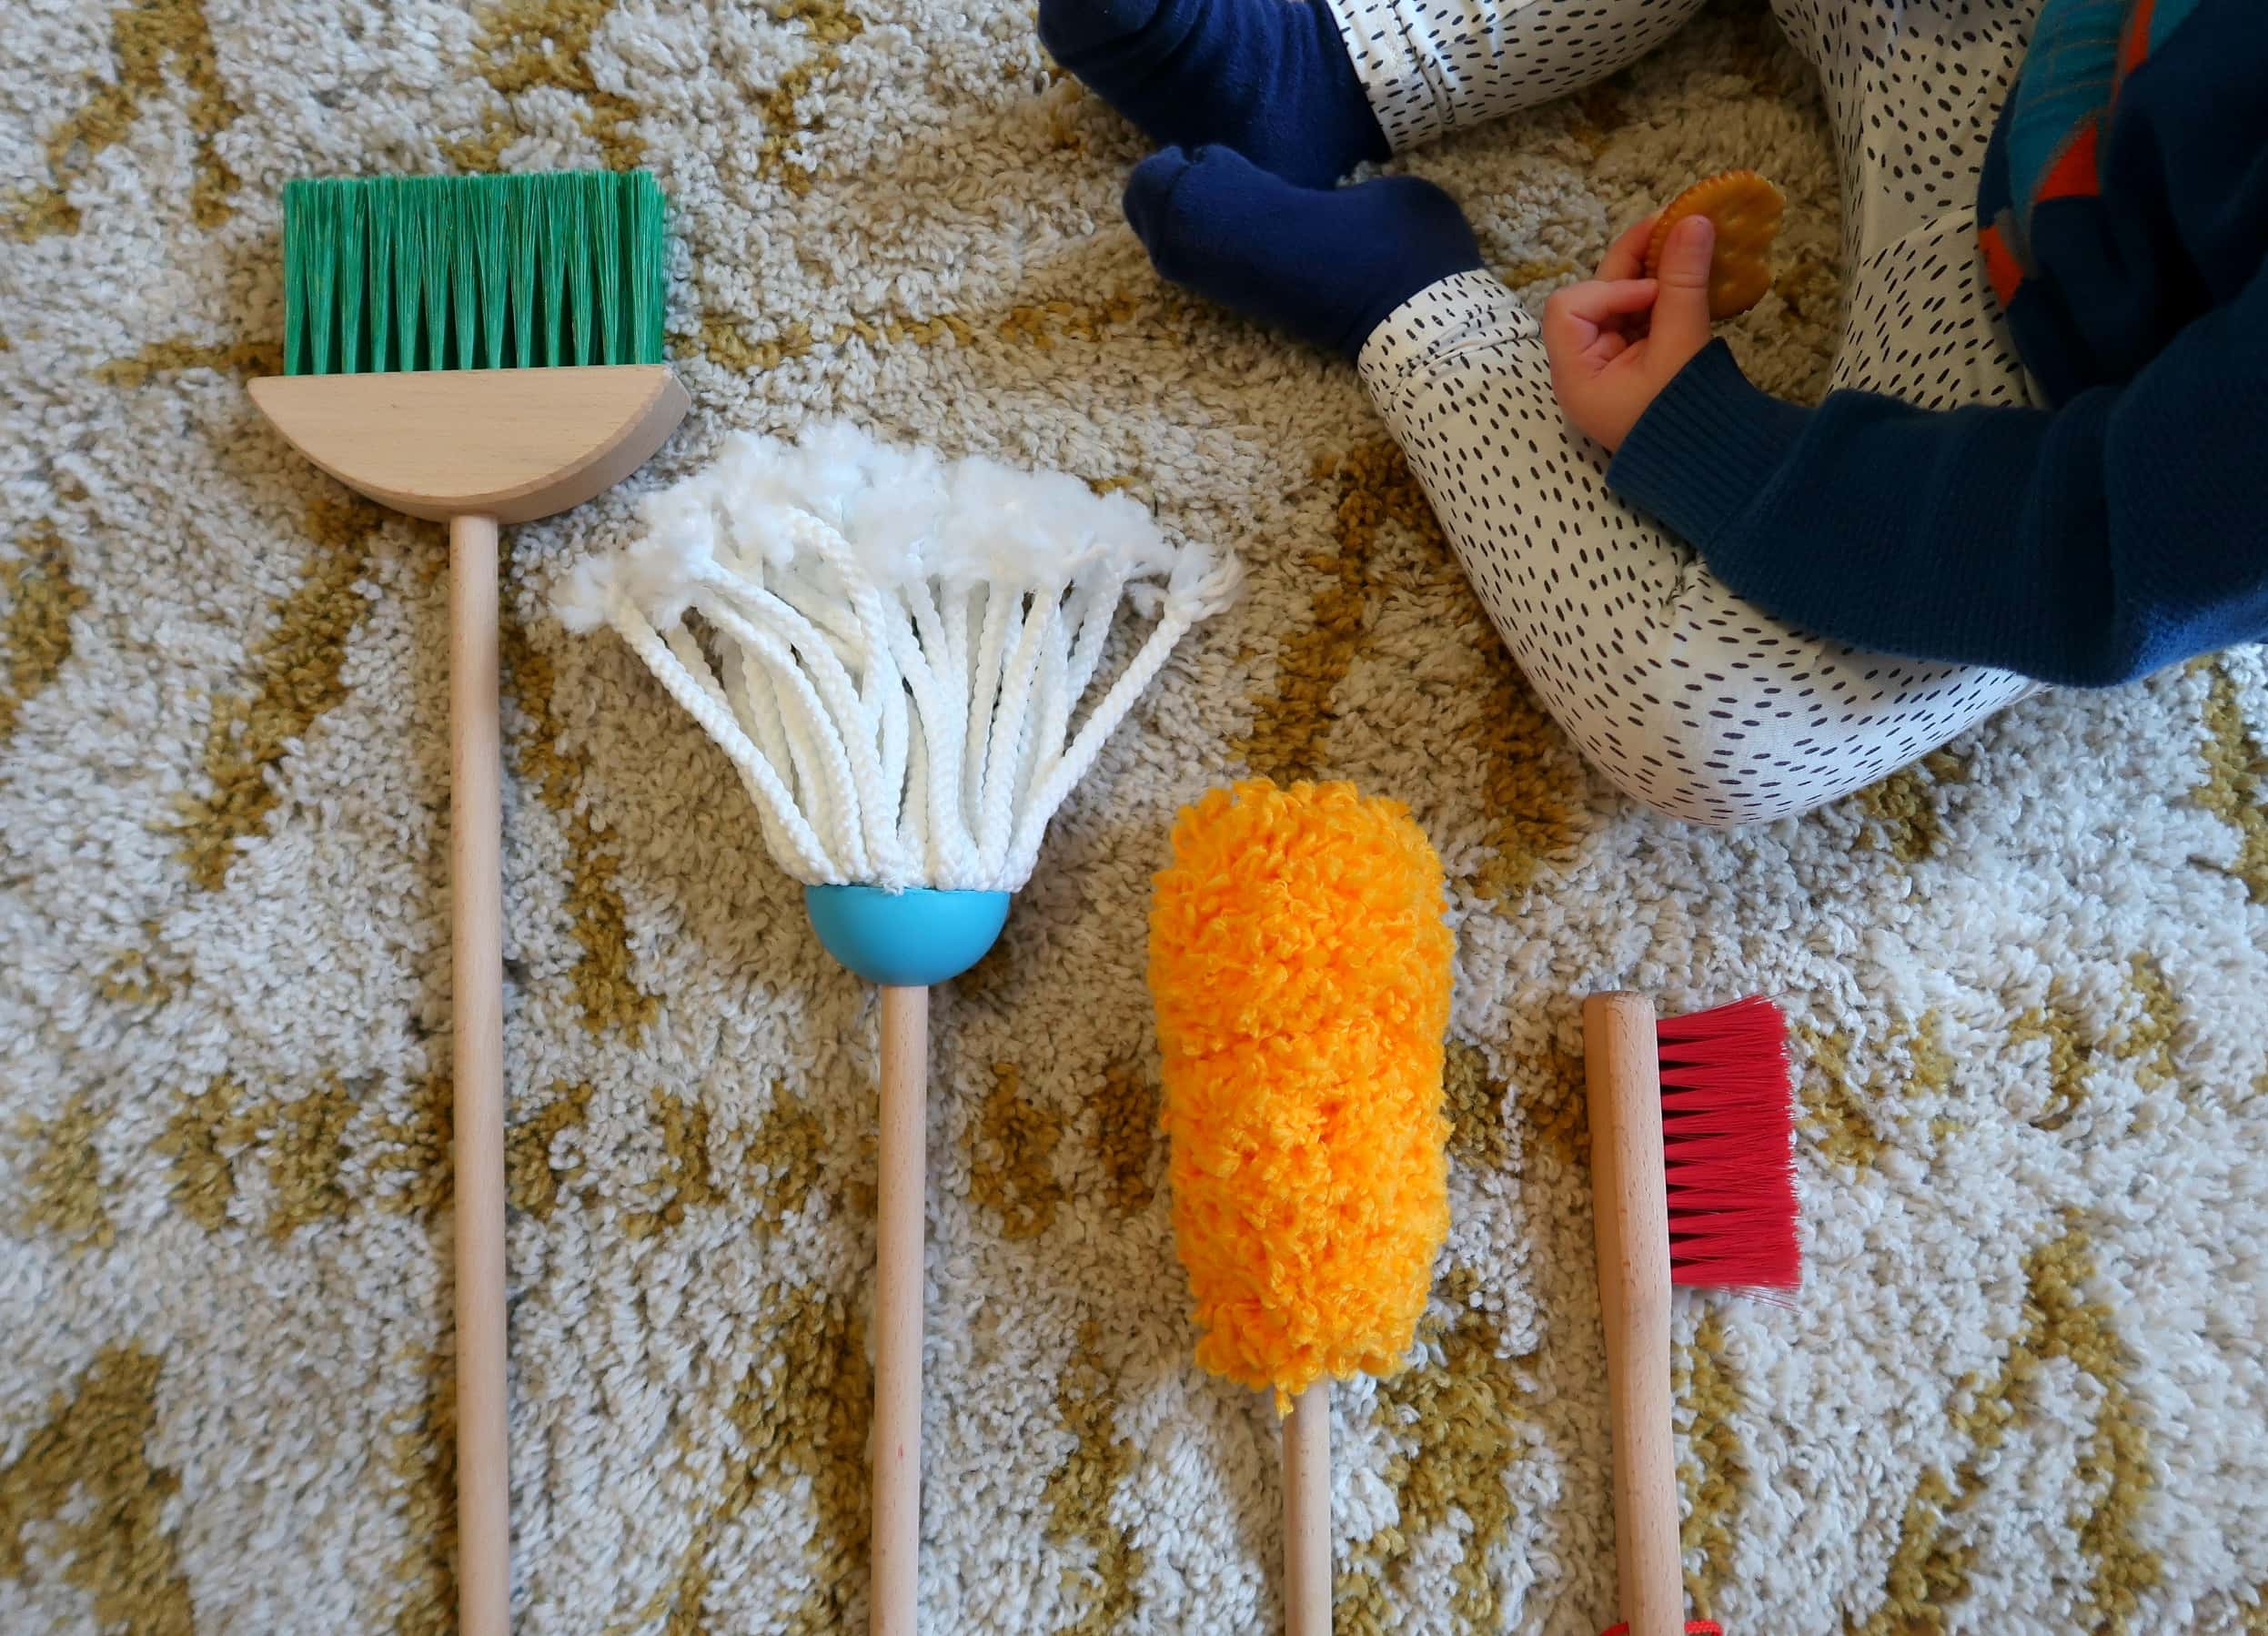 Melissa & Doug 4 colourful wooden brush toys to buy for a two-year old